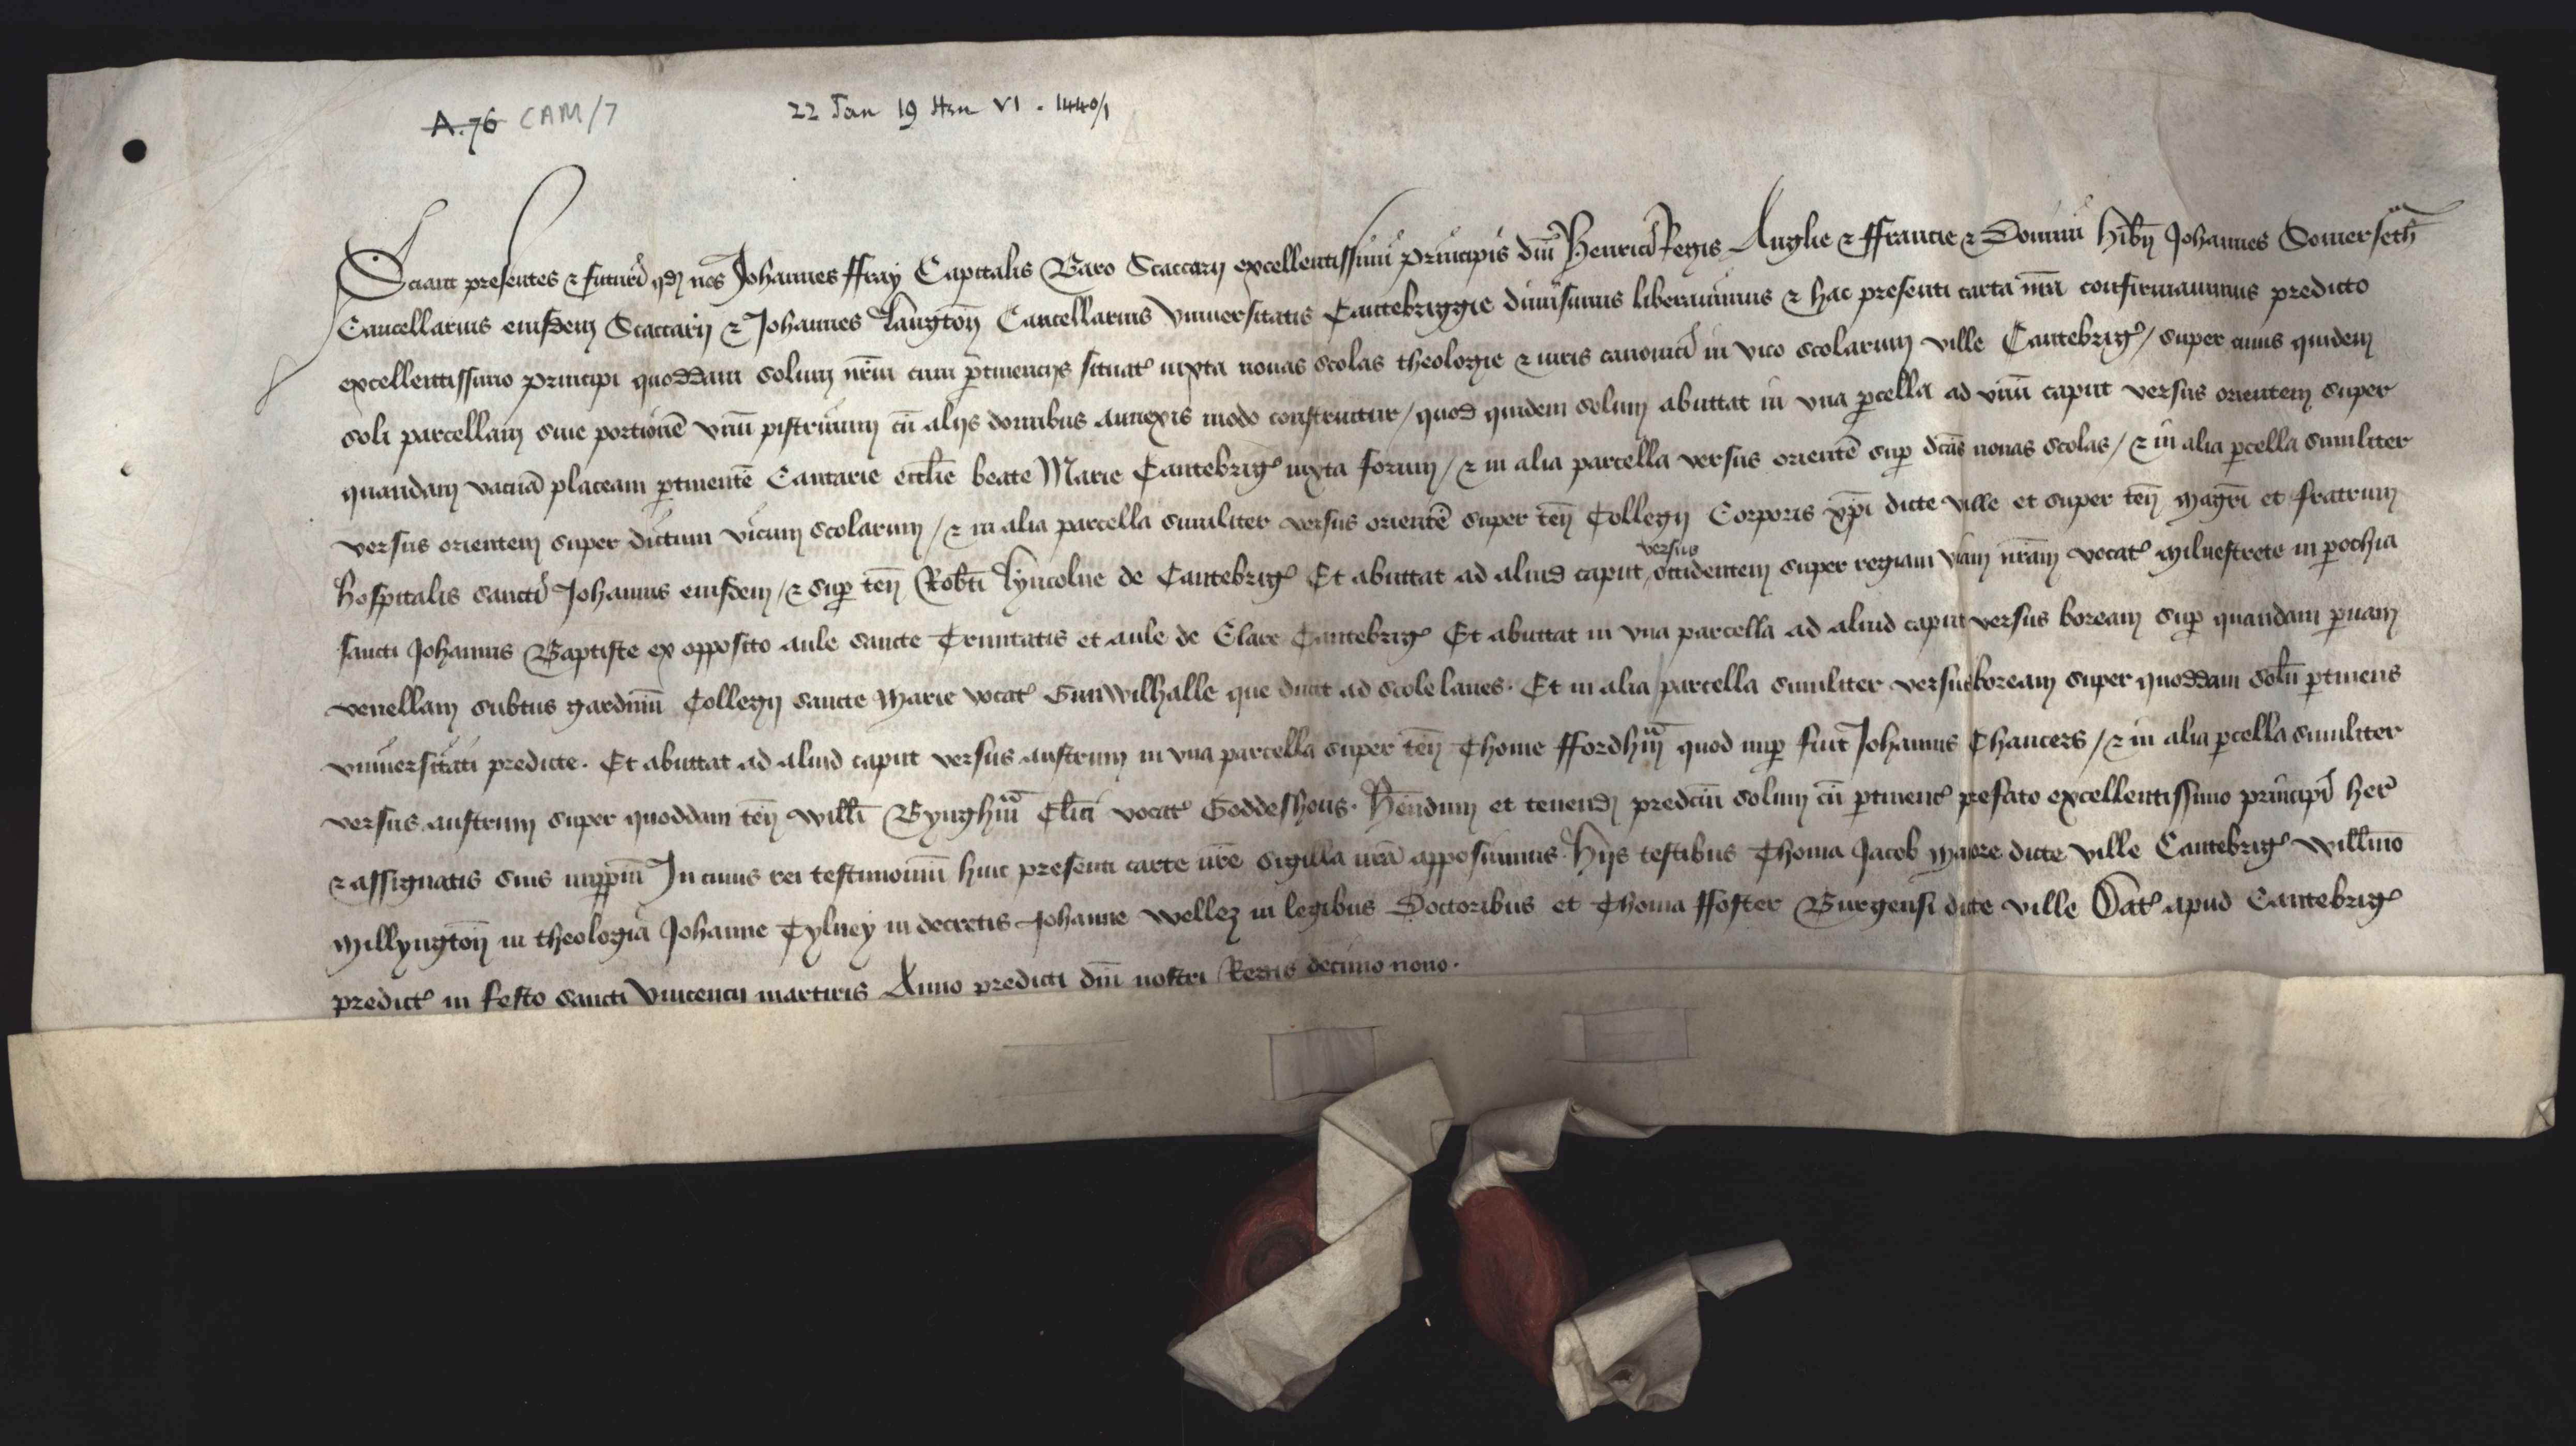 One of a bundle of deeds relating to grammar school tenement in Cambridge, resulting in John Bray, John Somerset and John Langton enfeoffing King Henry VI of it. [CAM/7, formerly A.76]